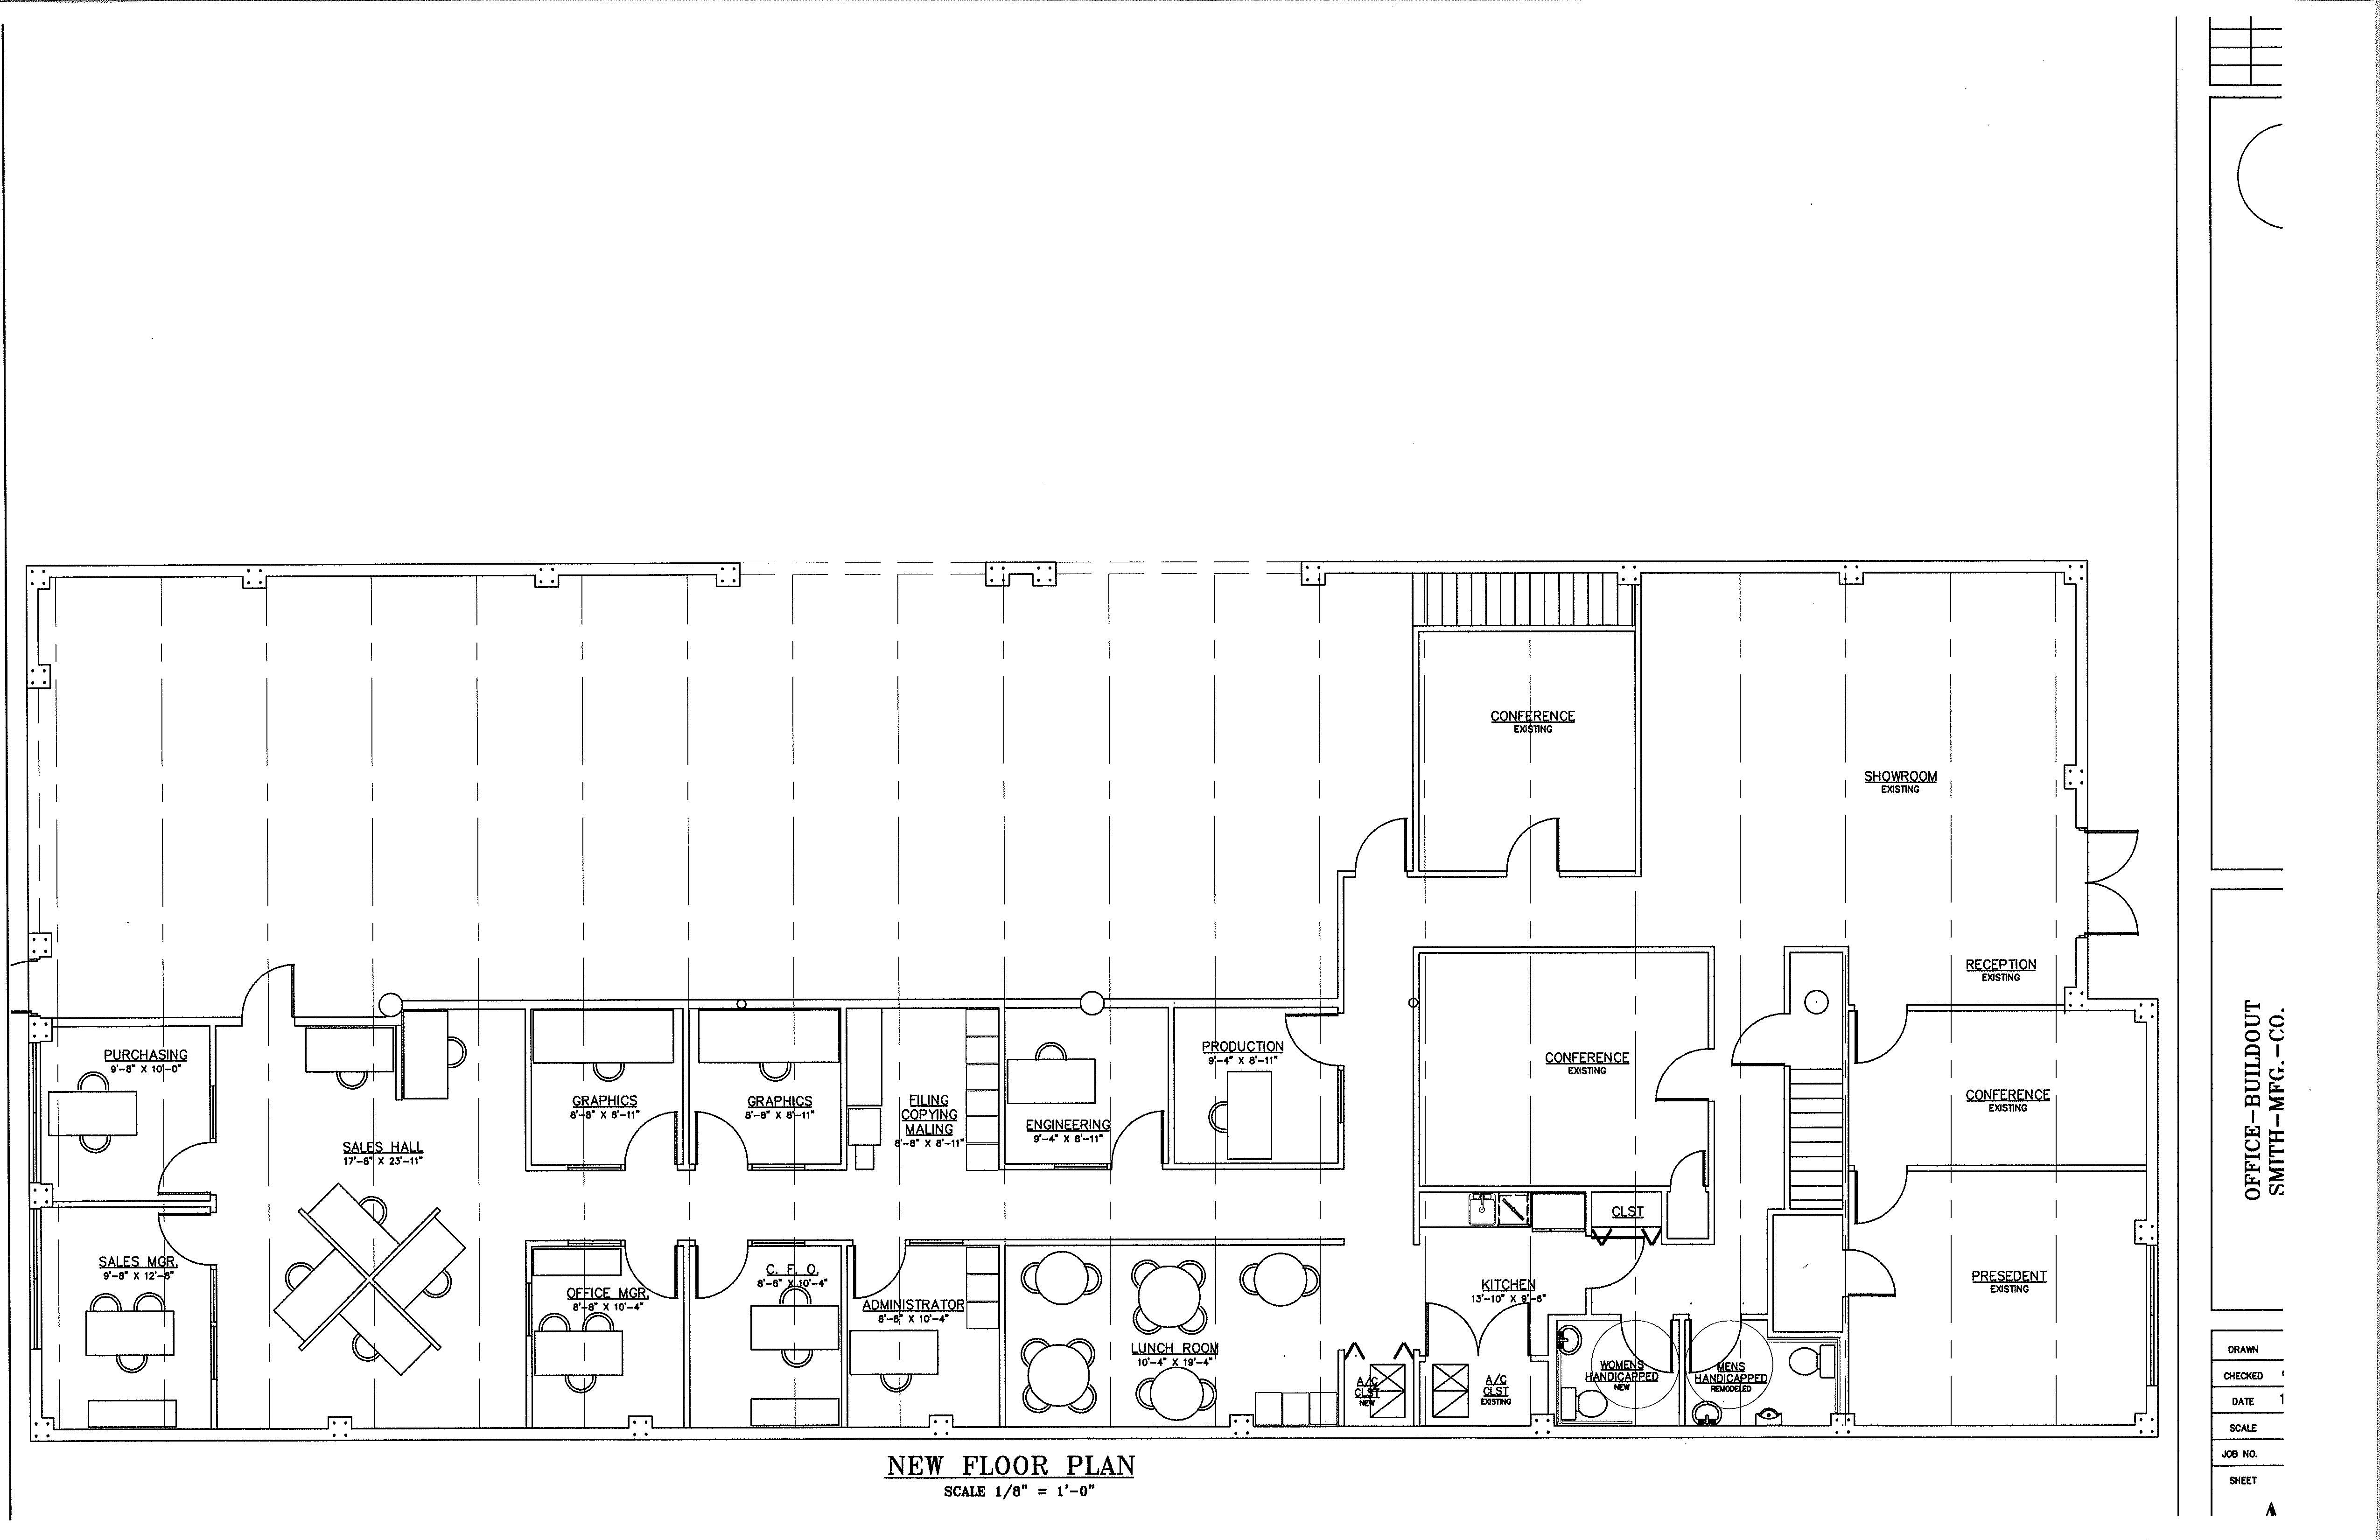 Drawn office office space Pompano 2 Planning 304 FP's